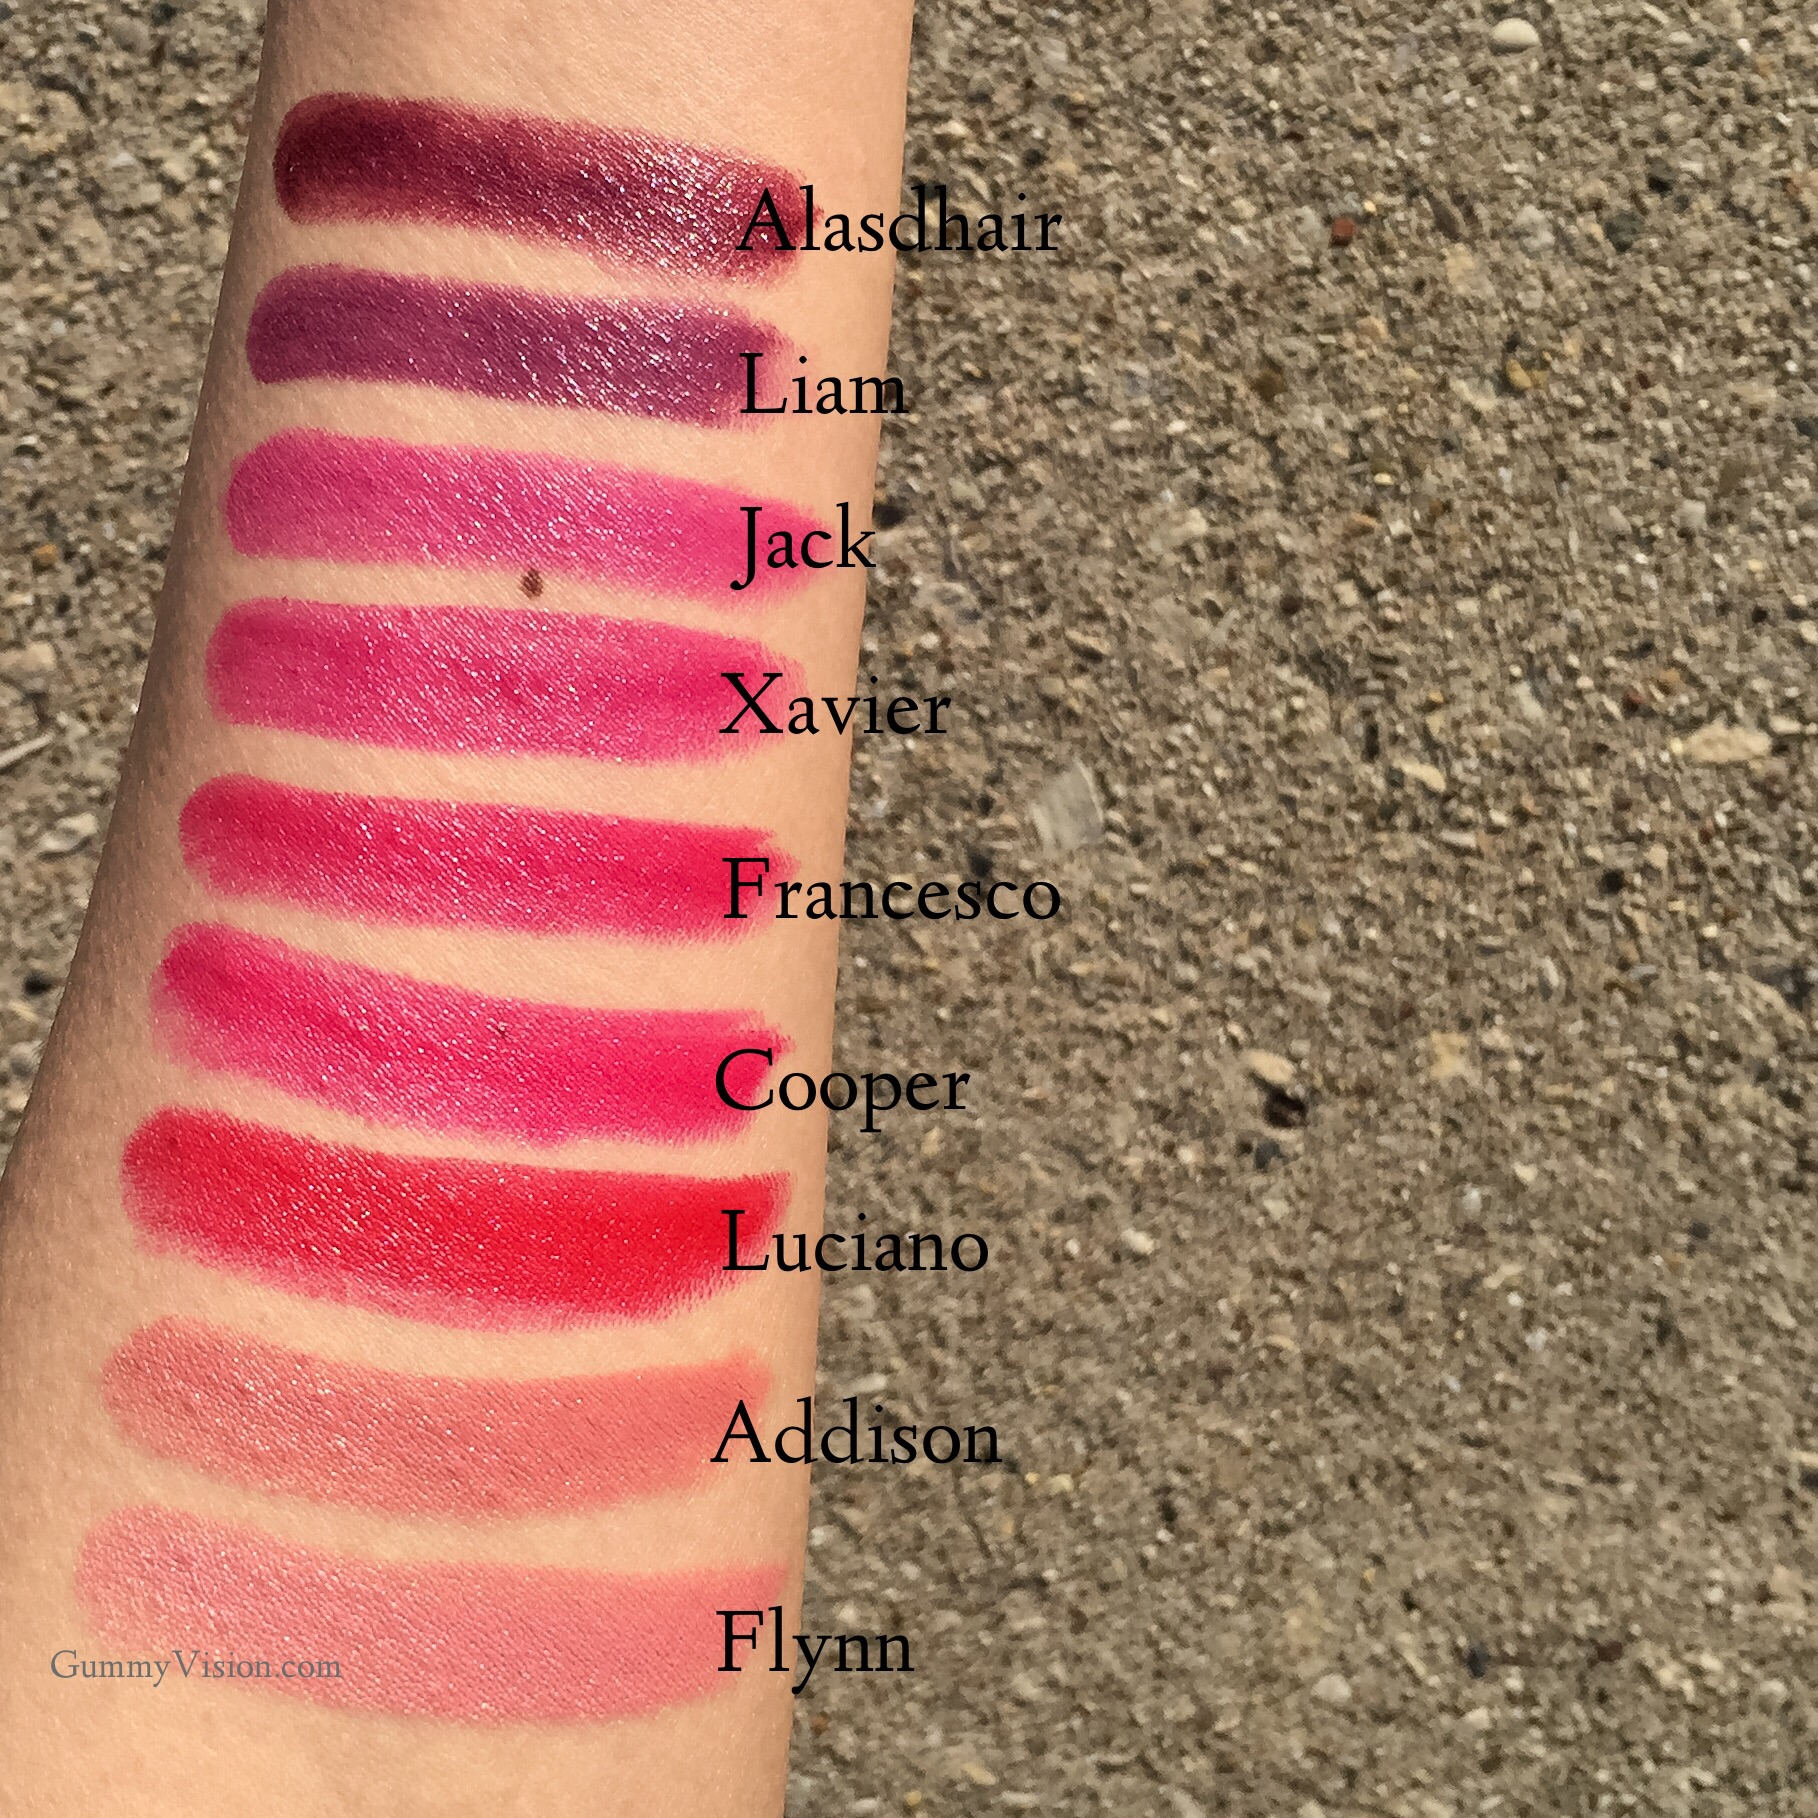 Outdoor Winter sunlight swatches:  Tom Ford Lips & Boys in Flynn, Addison, Luciano, Cooper, Francesco, Xavier, Jack, Liam, Alasdhair - www.gummyvision.com